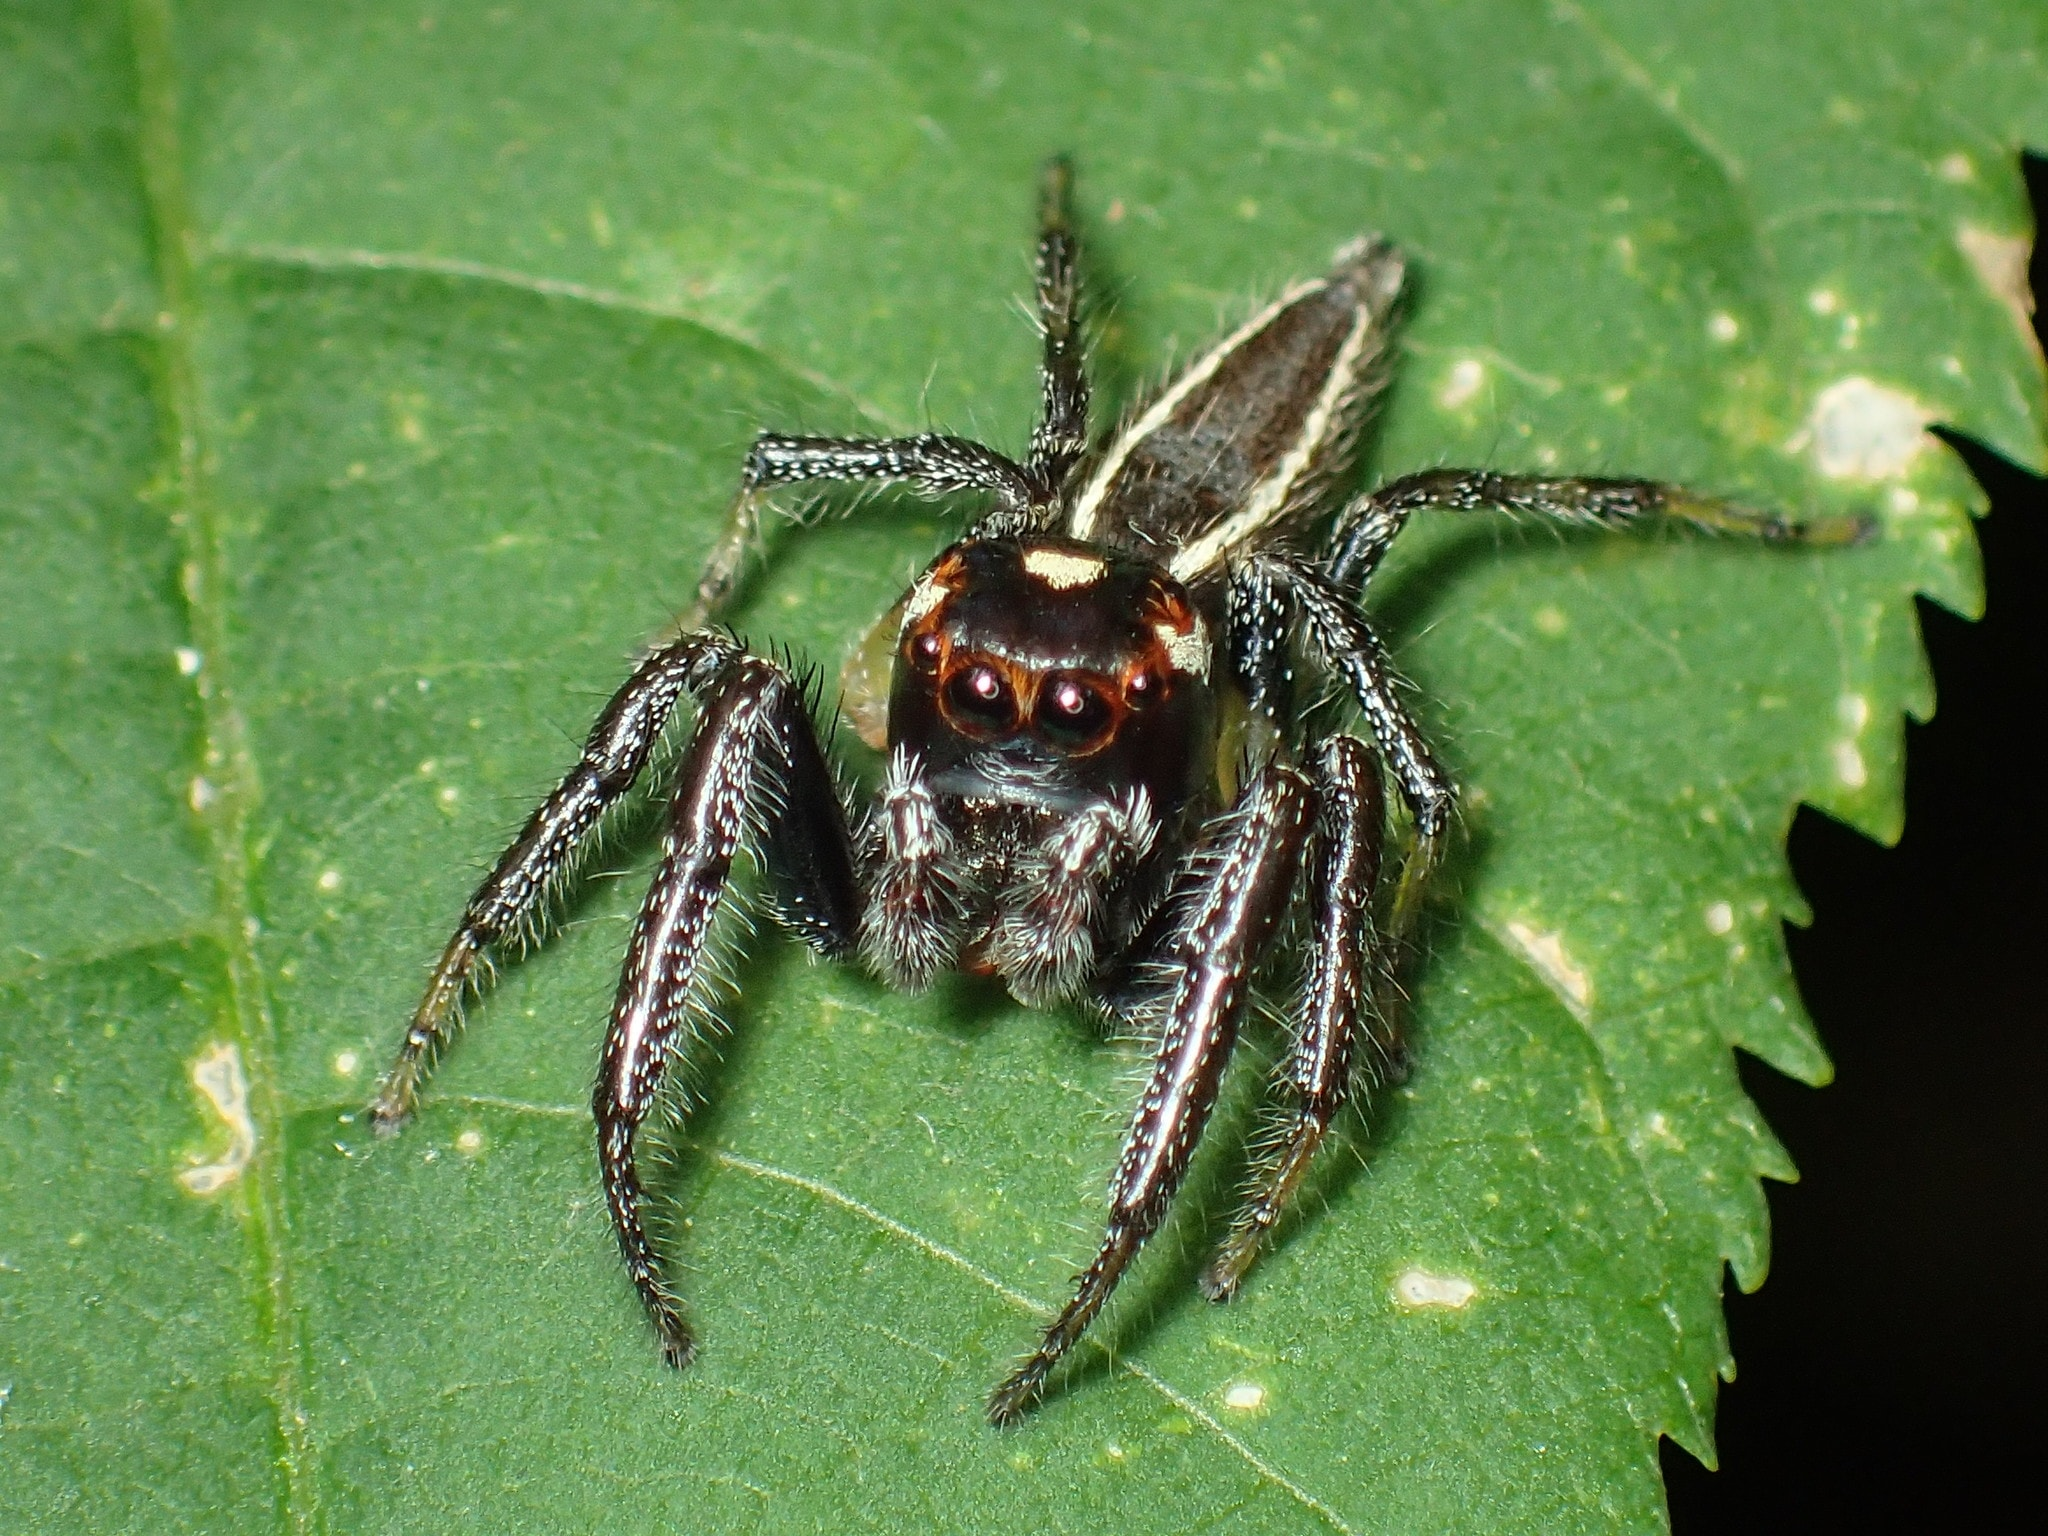 Picture of Colonus sylvanus (Sylvana Jumping Spider) - Male - Dorsal,Eyes